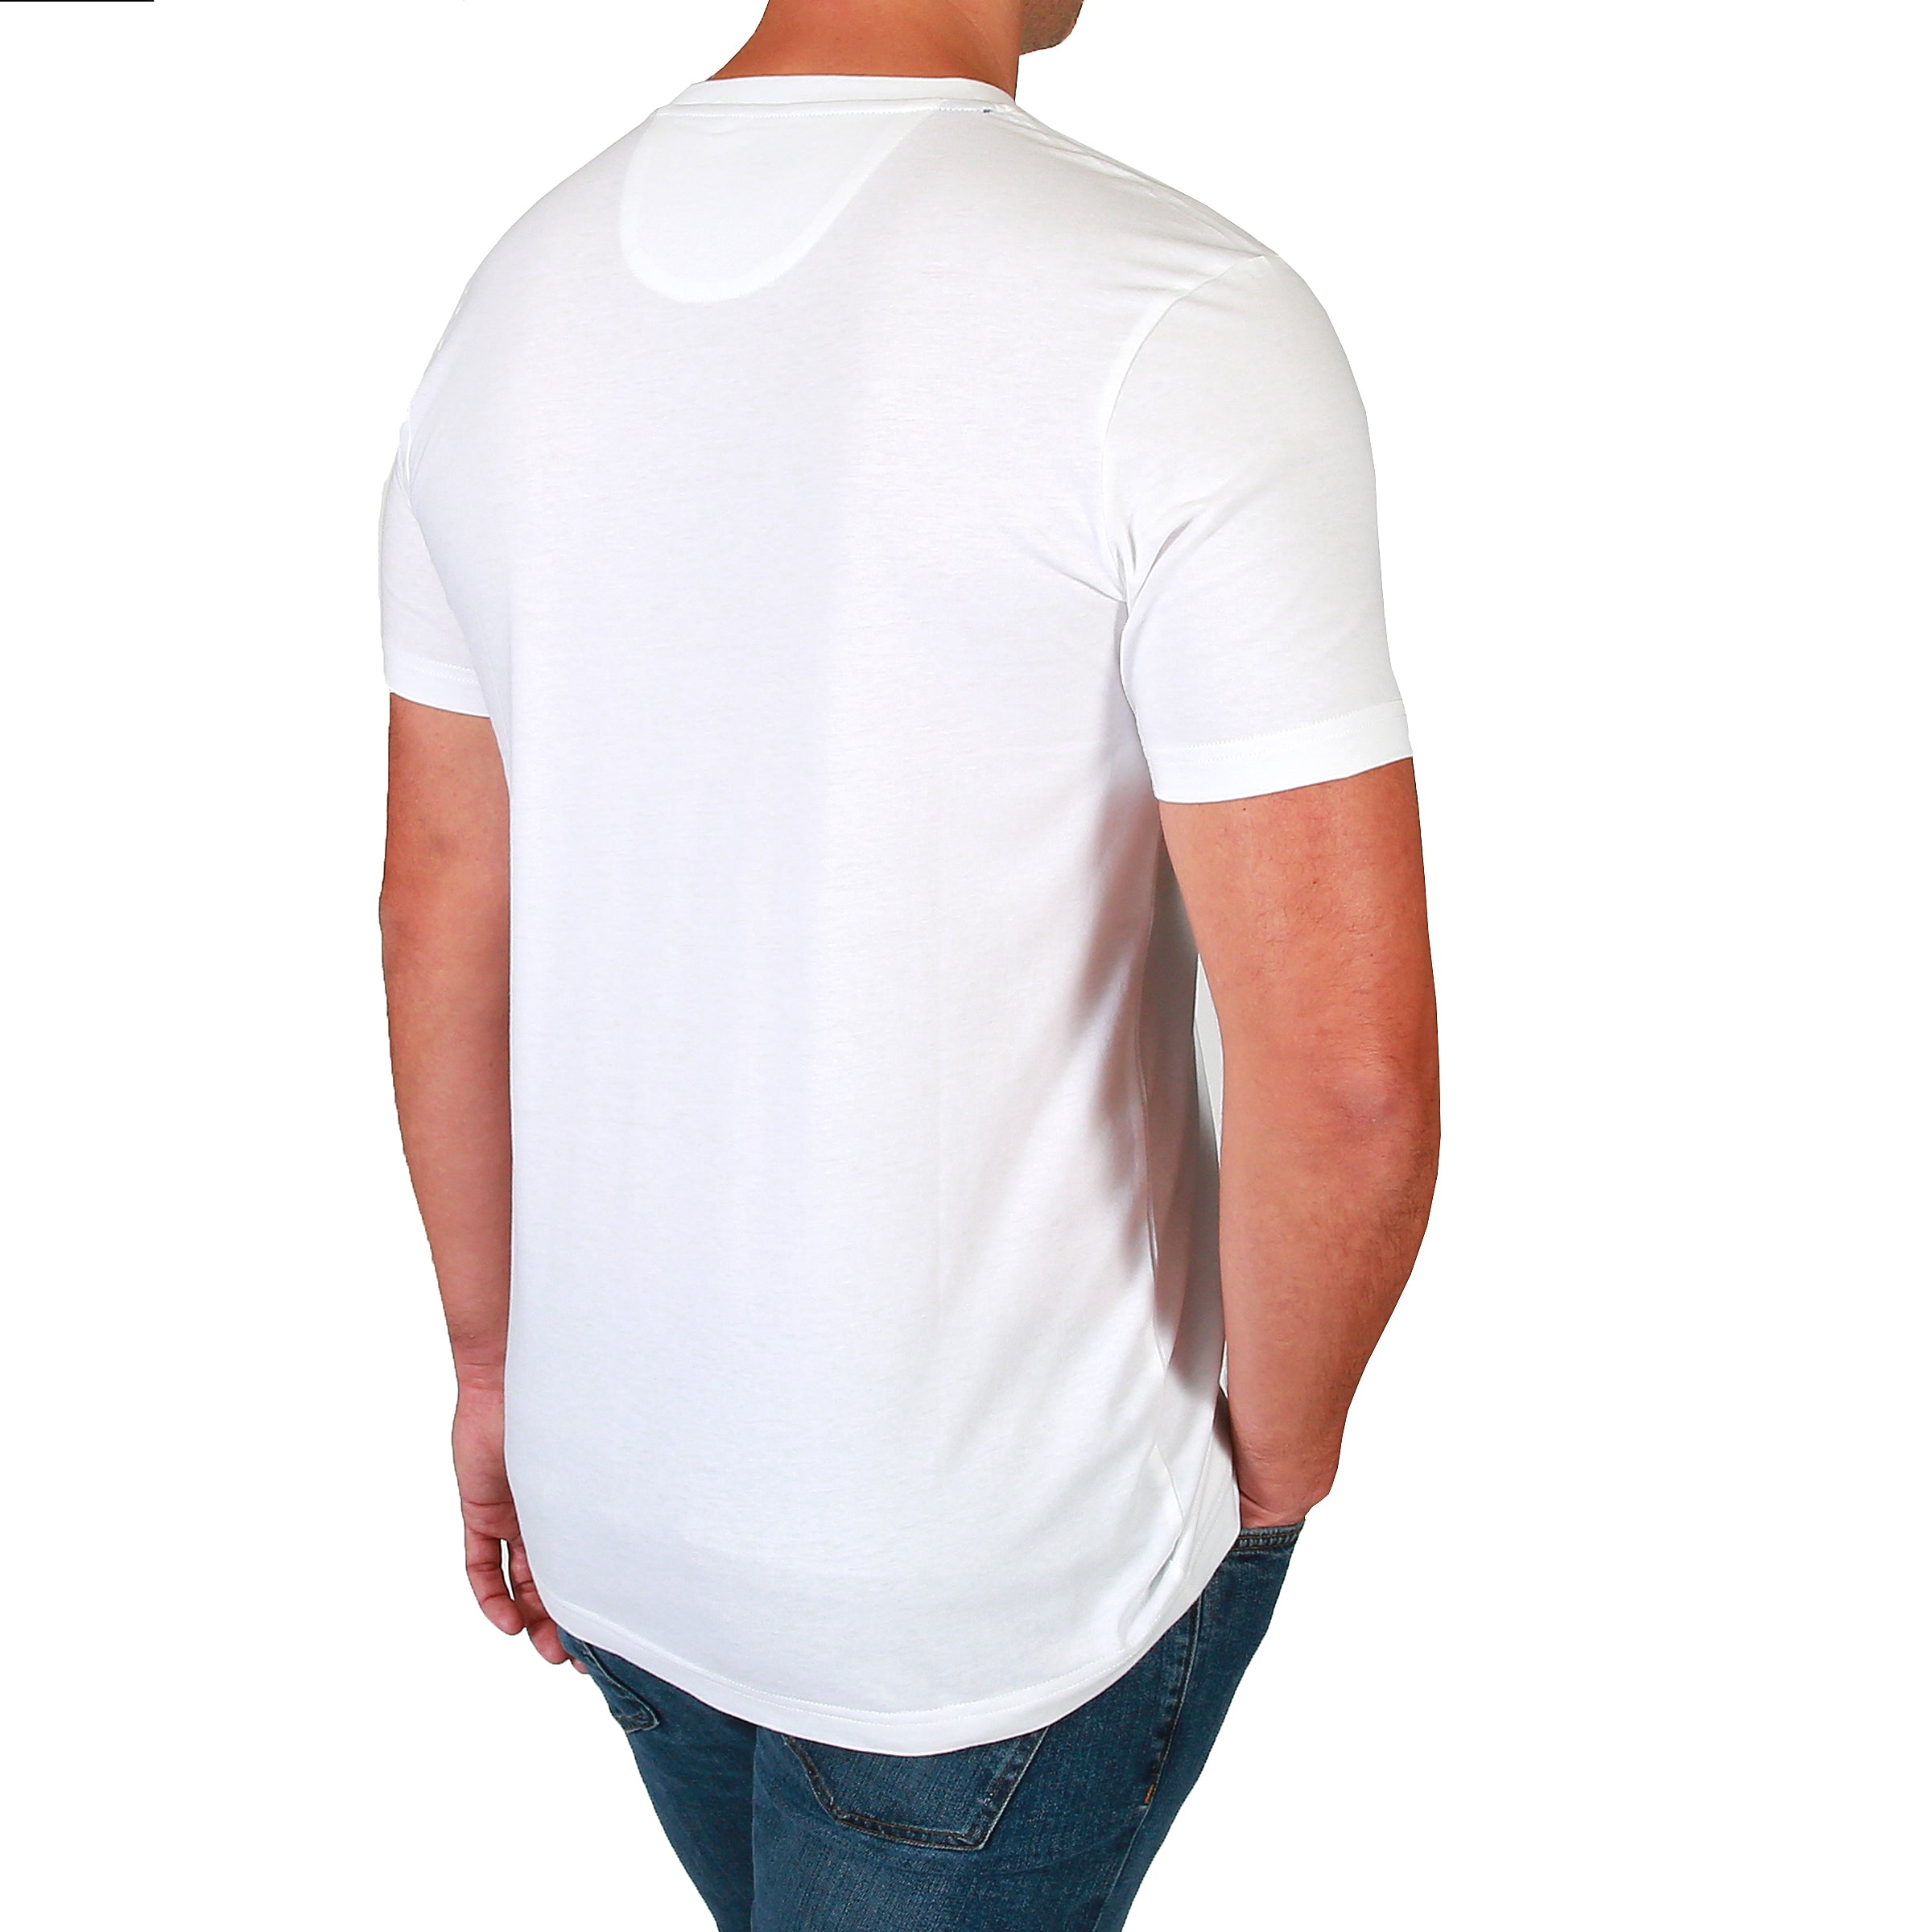 Theo V-Neck Tee Shirt - White by  Walrus Apparel